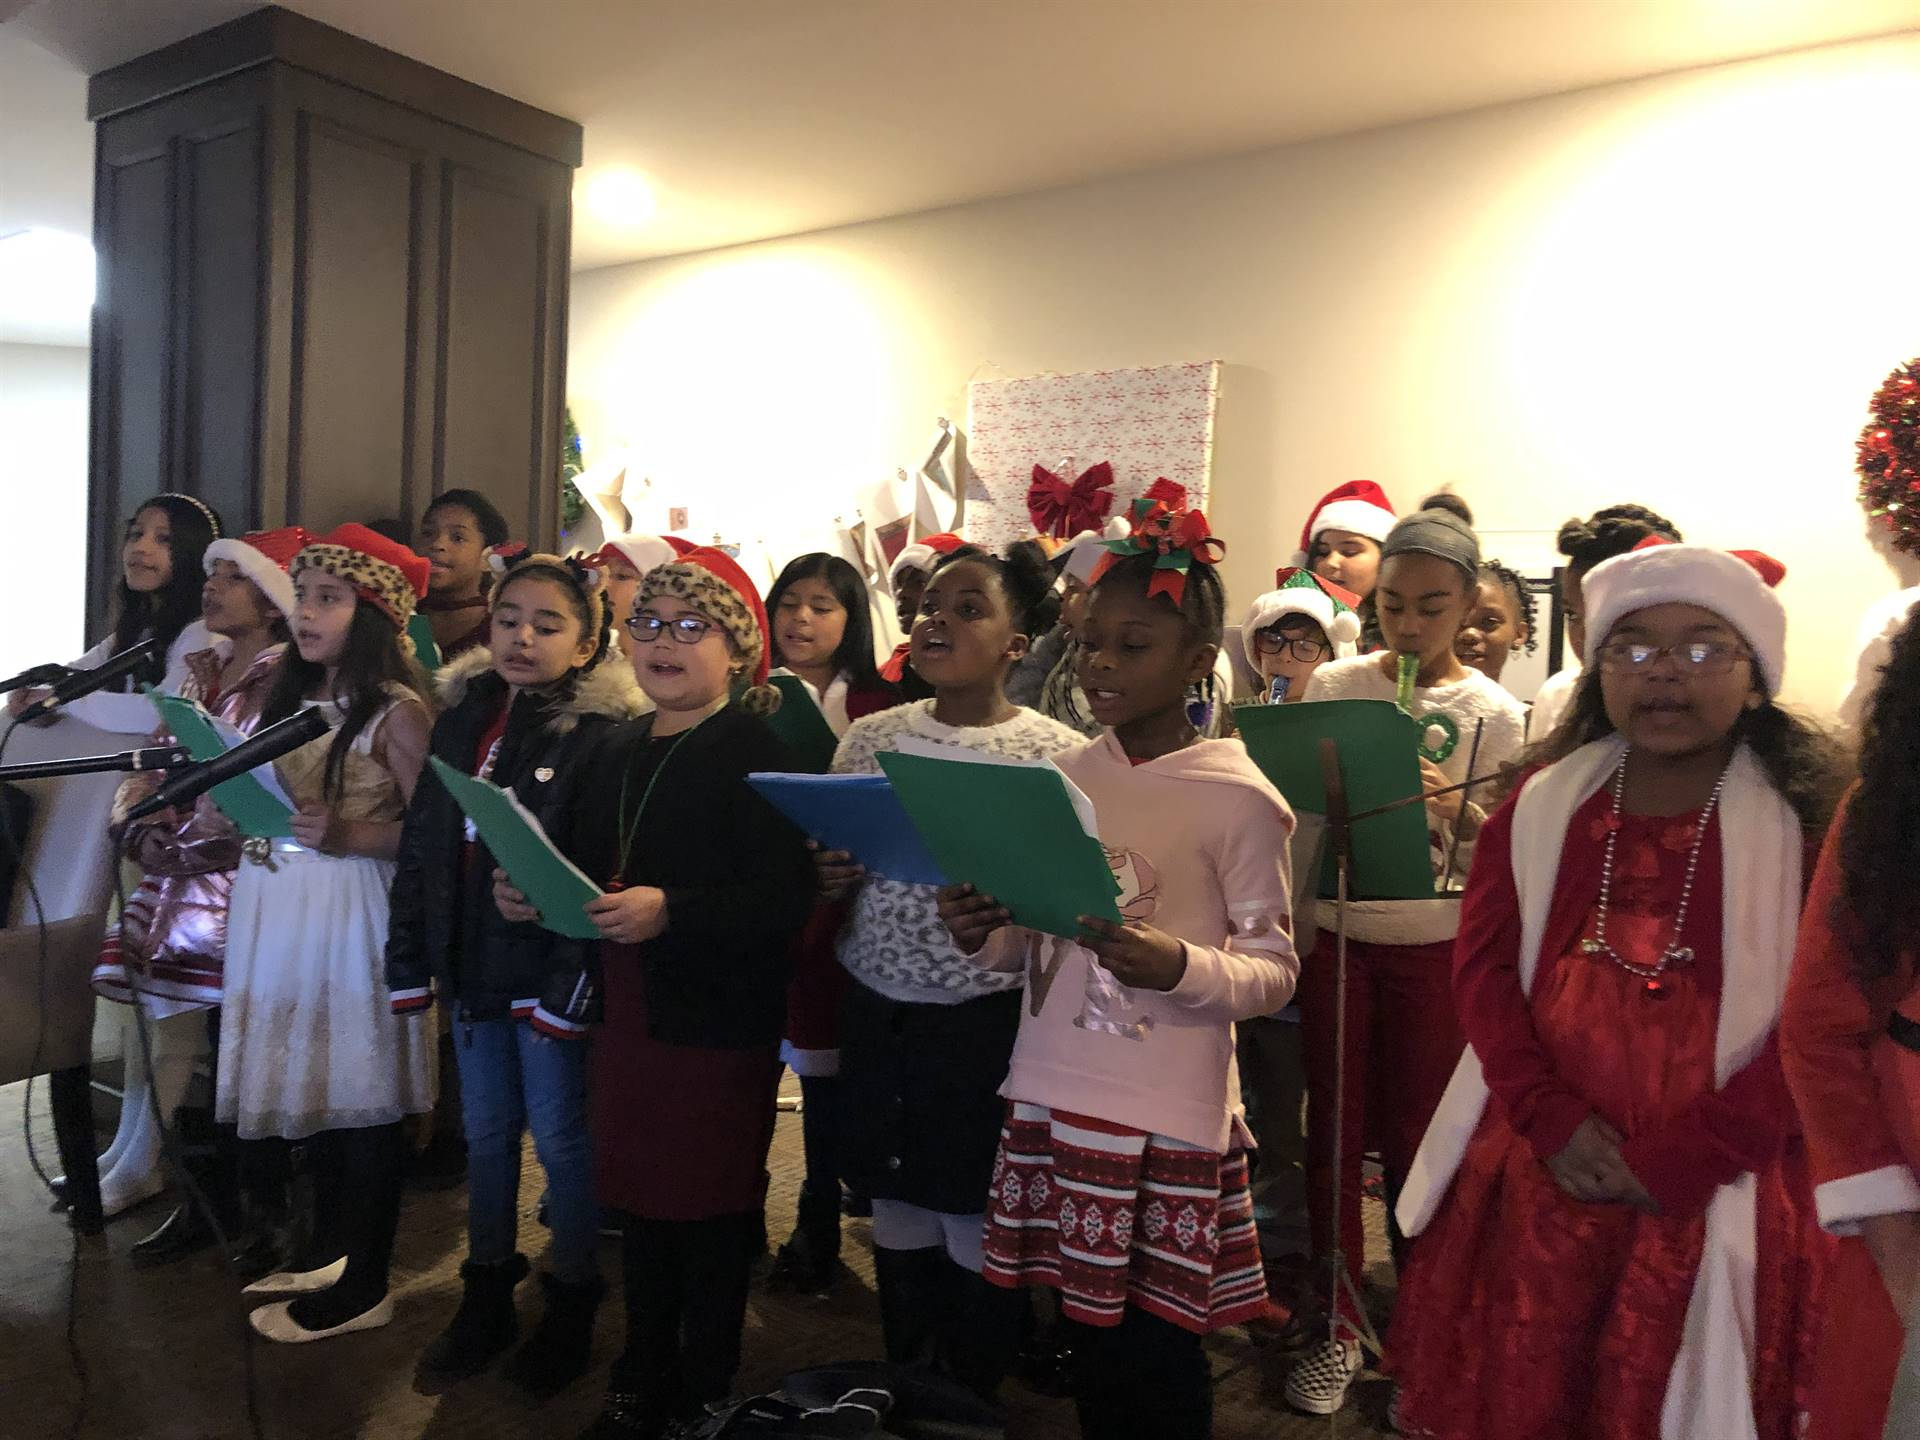 Holiday Performance at South Village